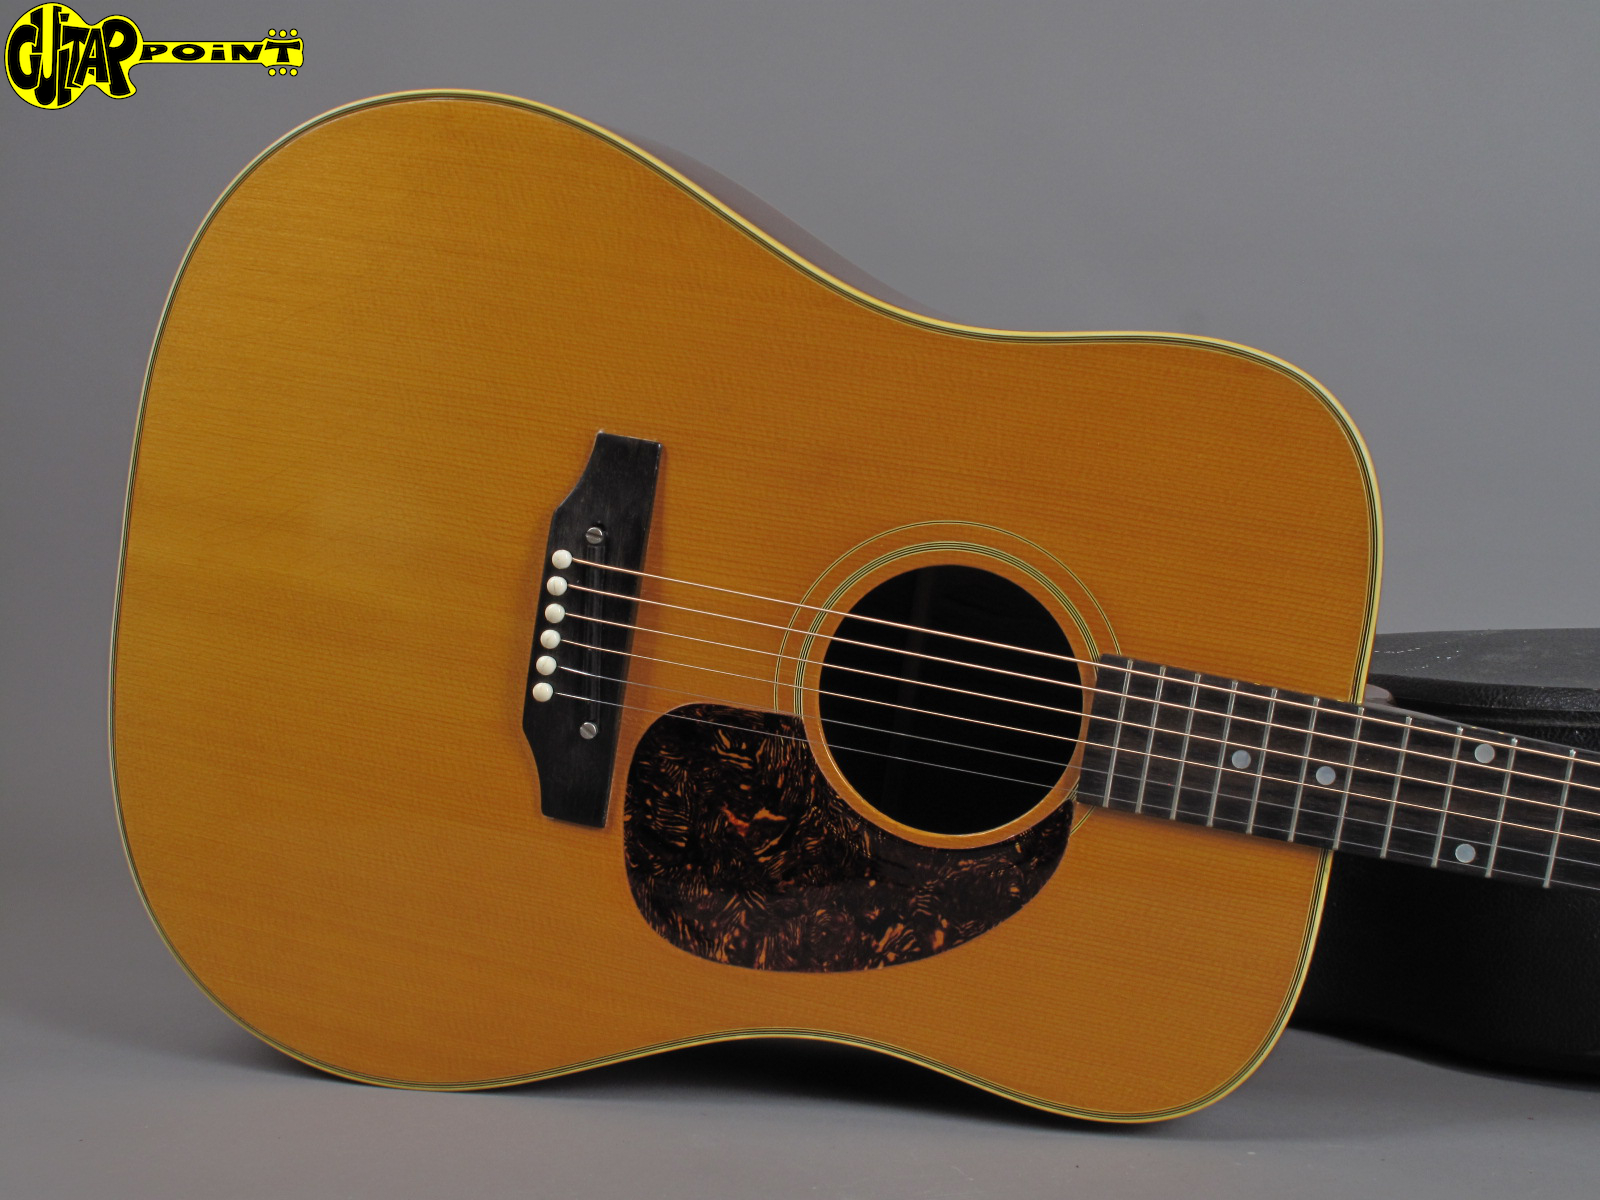 https://guitarpoint.de/app/uploads/products/1969-gibson-heritage-acoustic-natural/Gibson1969HeriAc929930_10.jpg